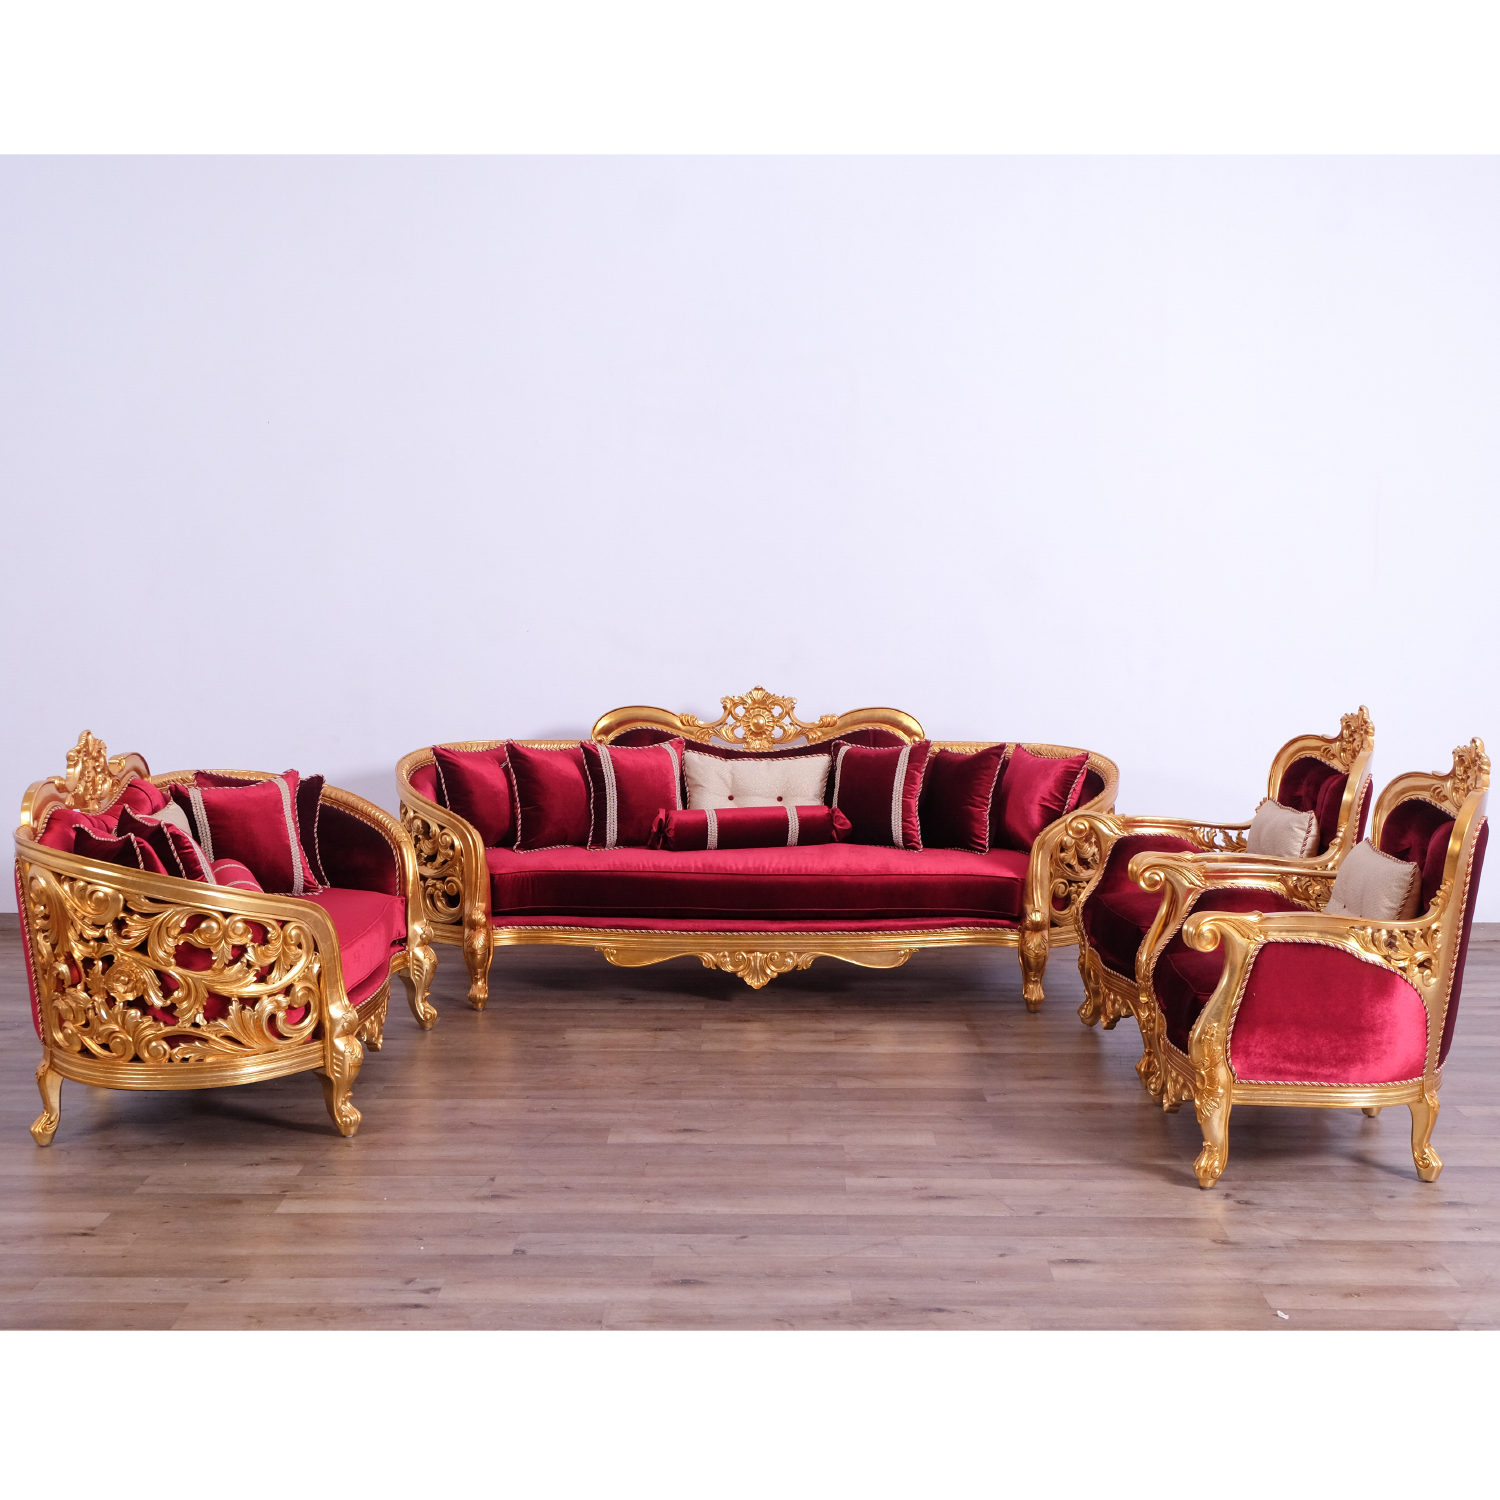 Magnificent Bellagio Ii Sofa In Gold Leaf Mahogany Red Velvet By Grand European Luxury Furniture Machost Co Dining Chair Design Ideas Machostcouk